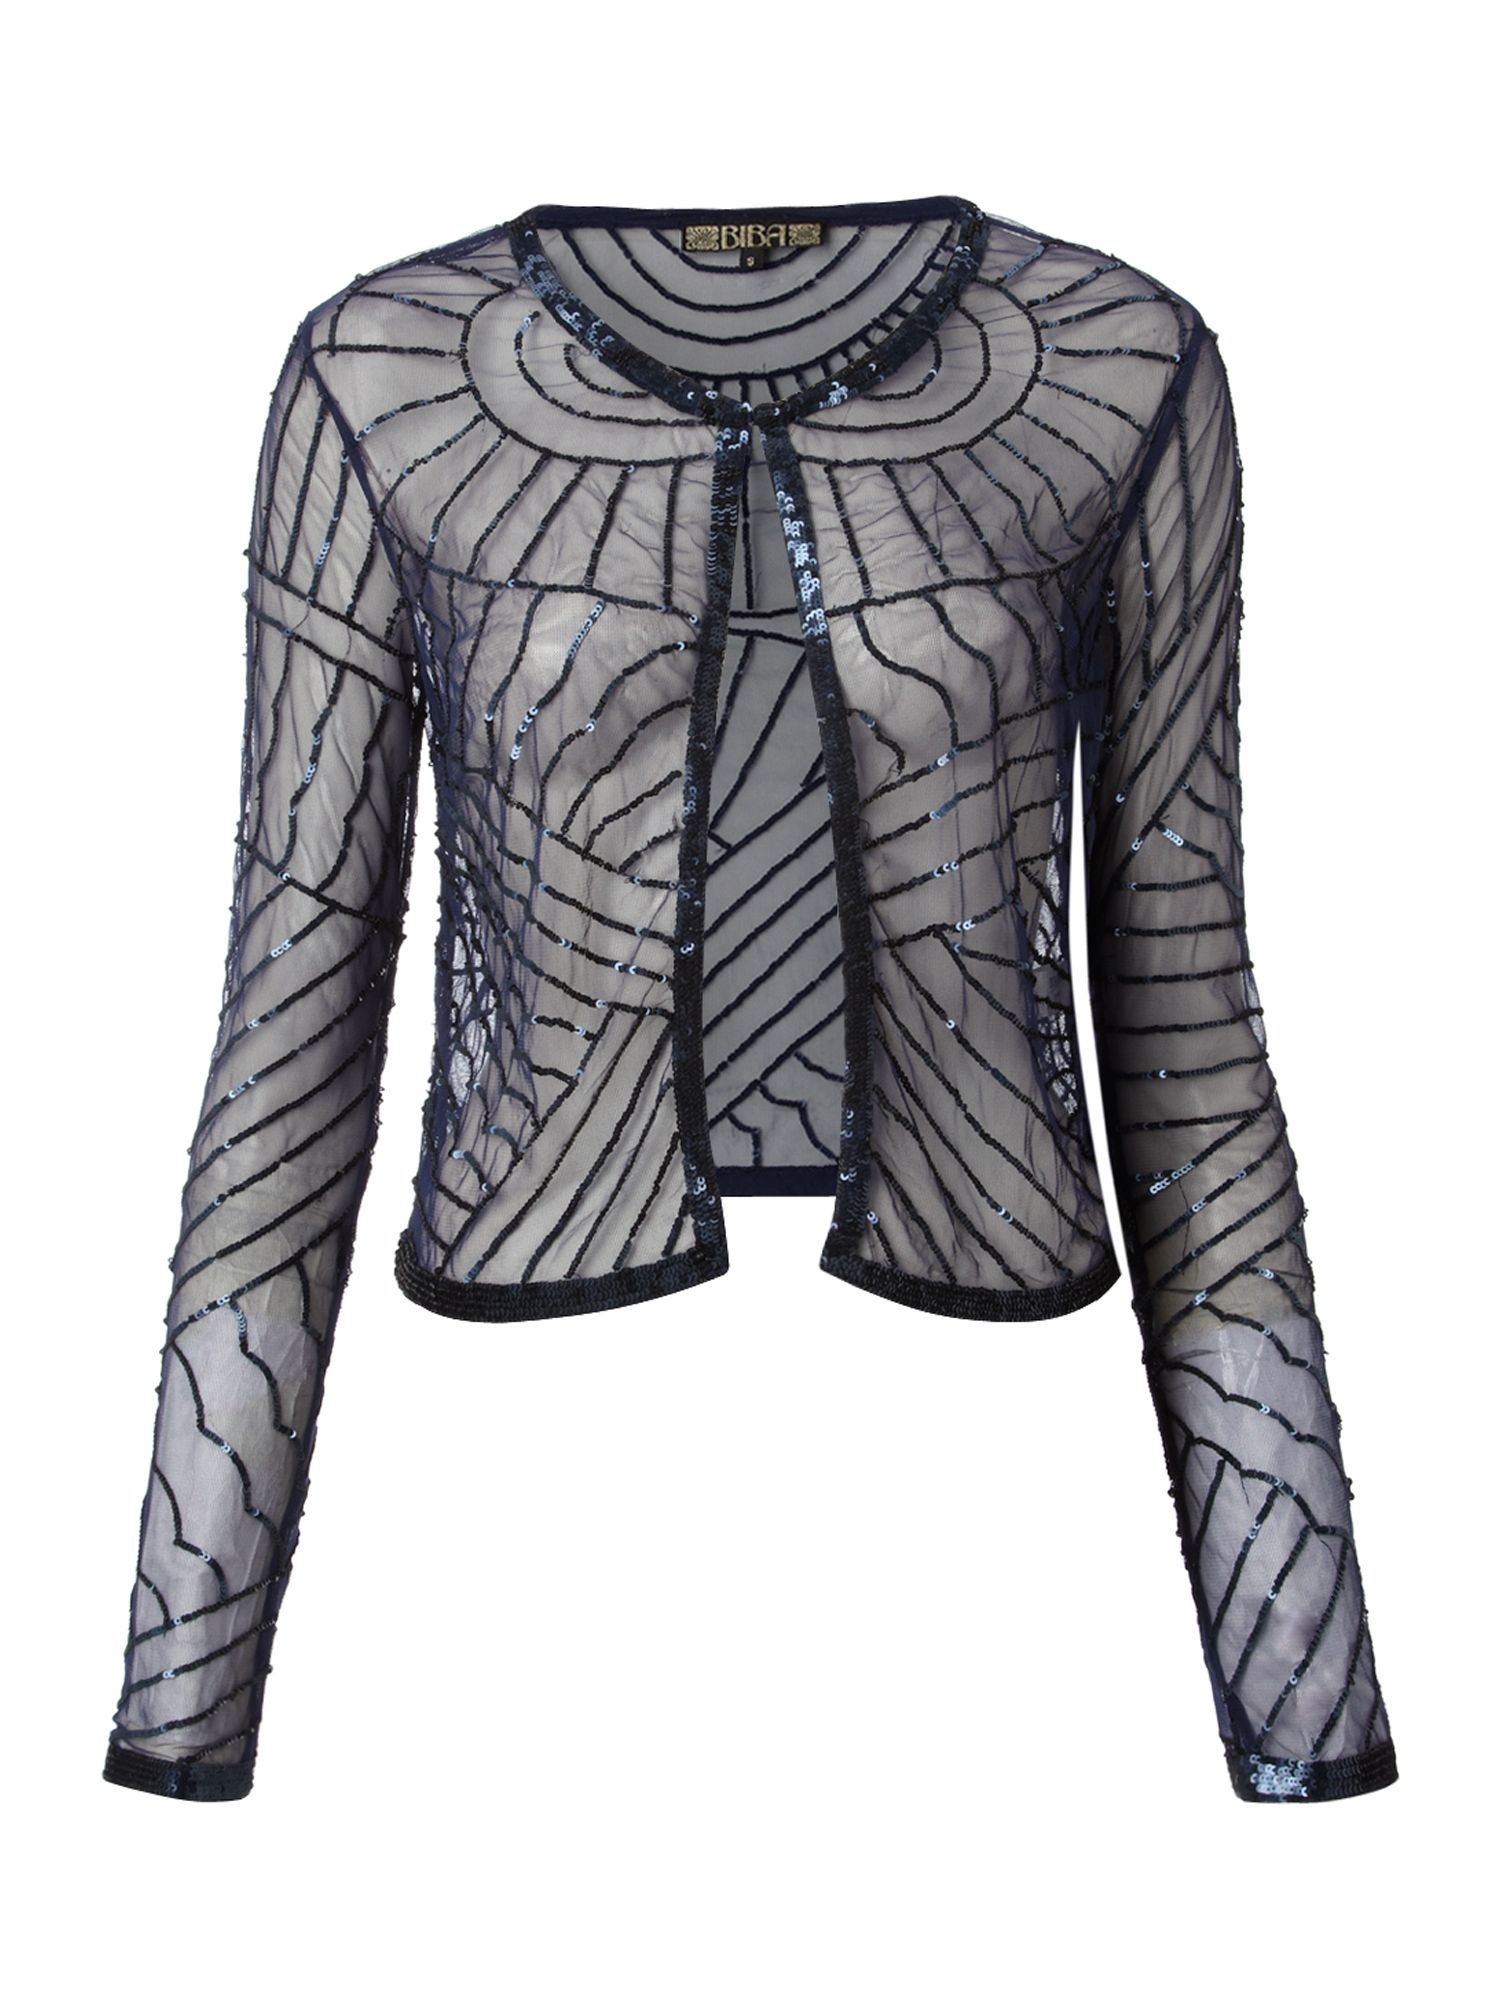 Deco embellished jacket